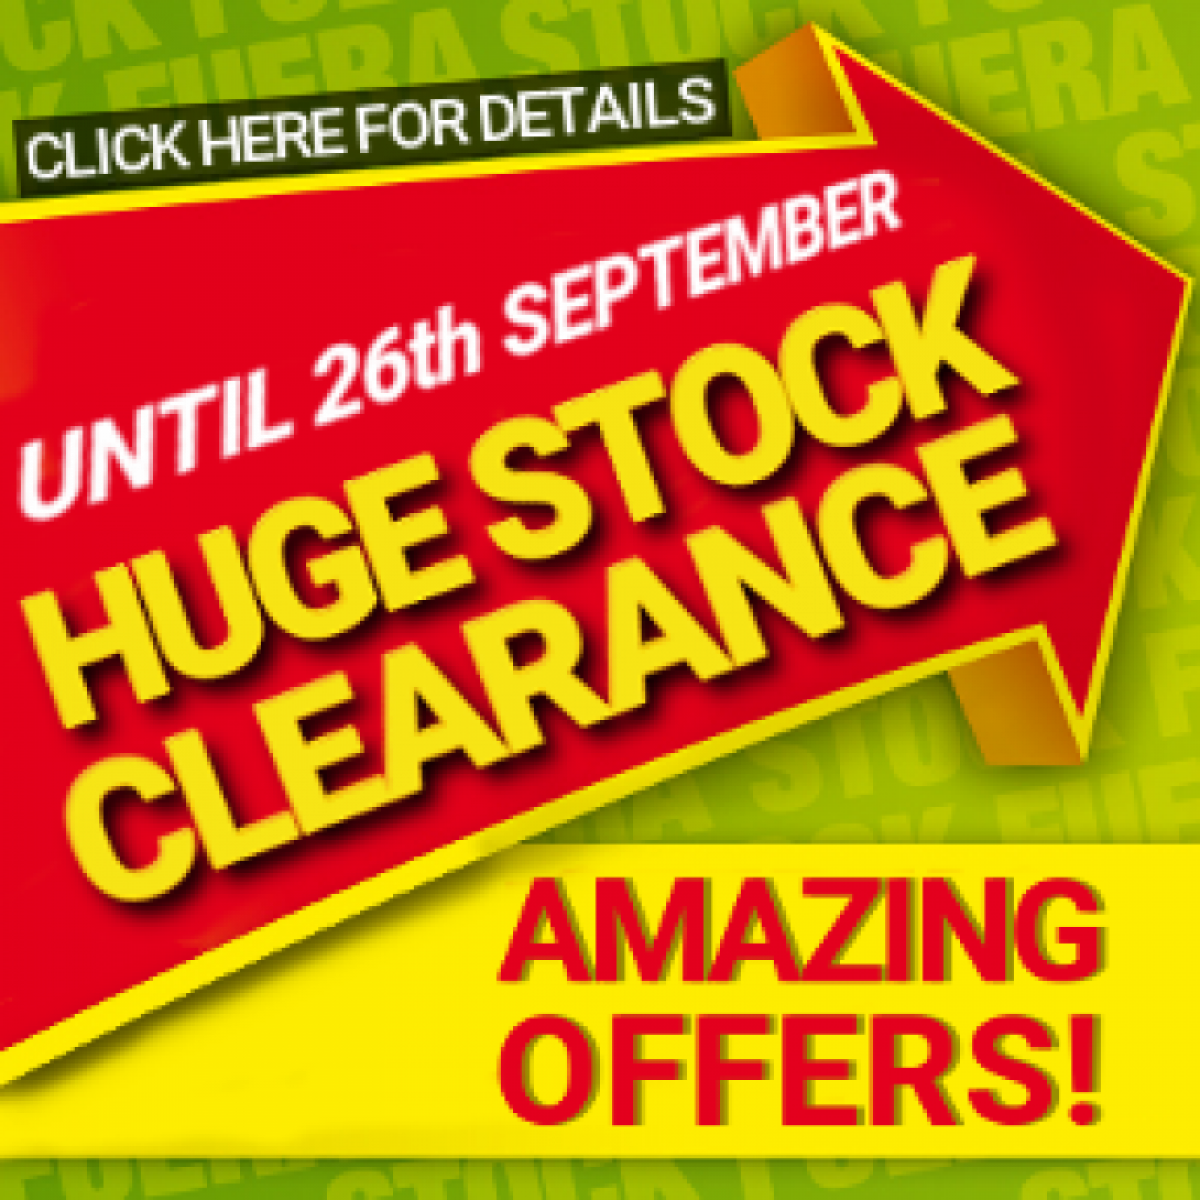 Huge stock clearance until 26th September at Leroy Merlin Cartagena